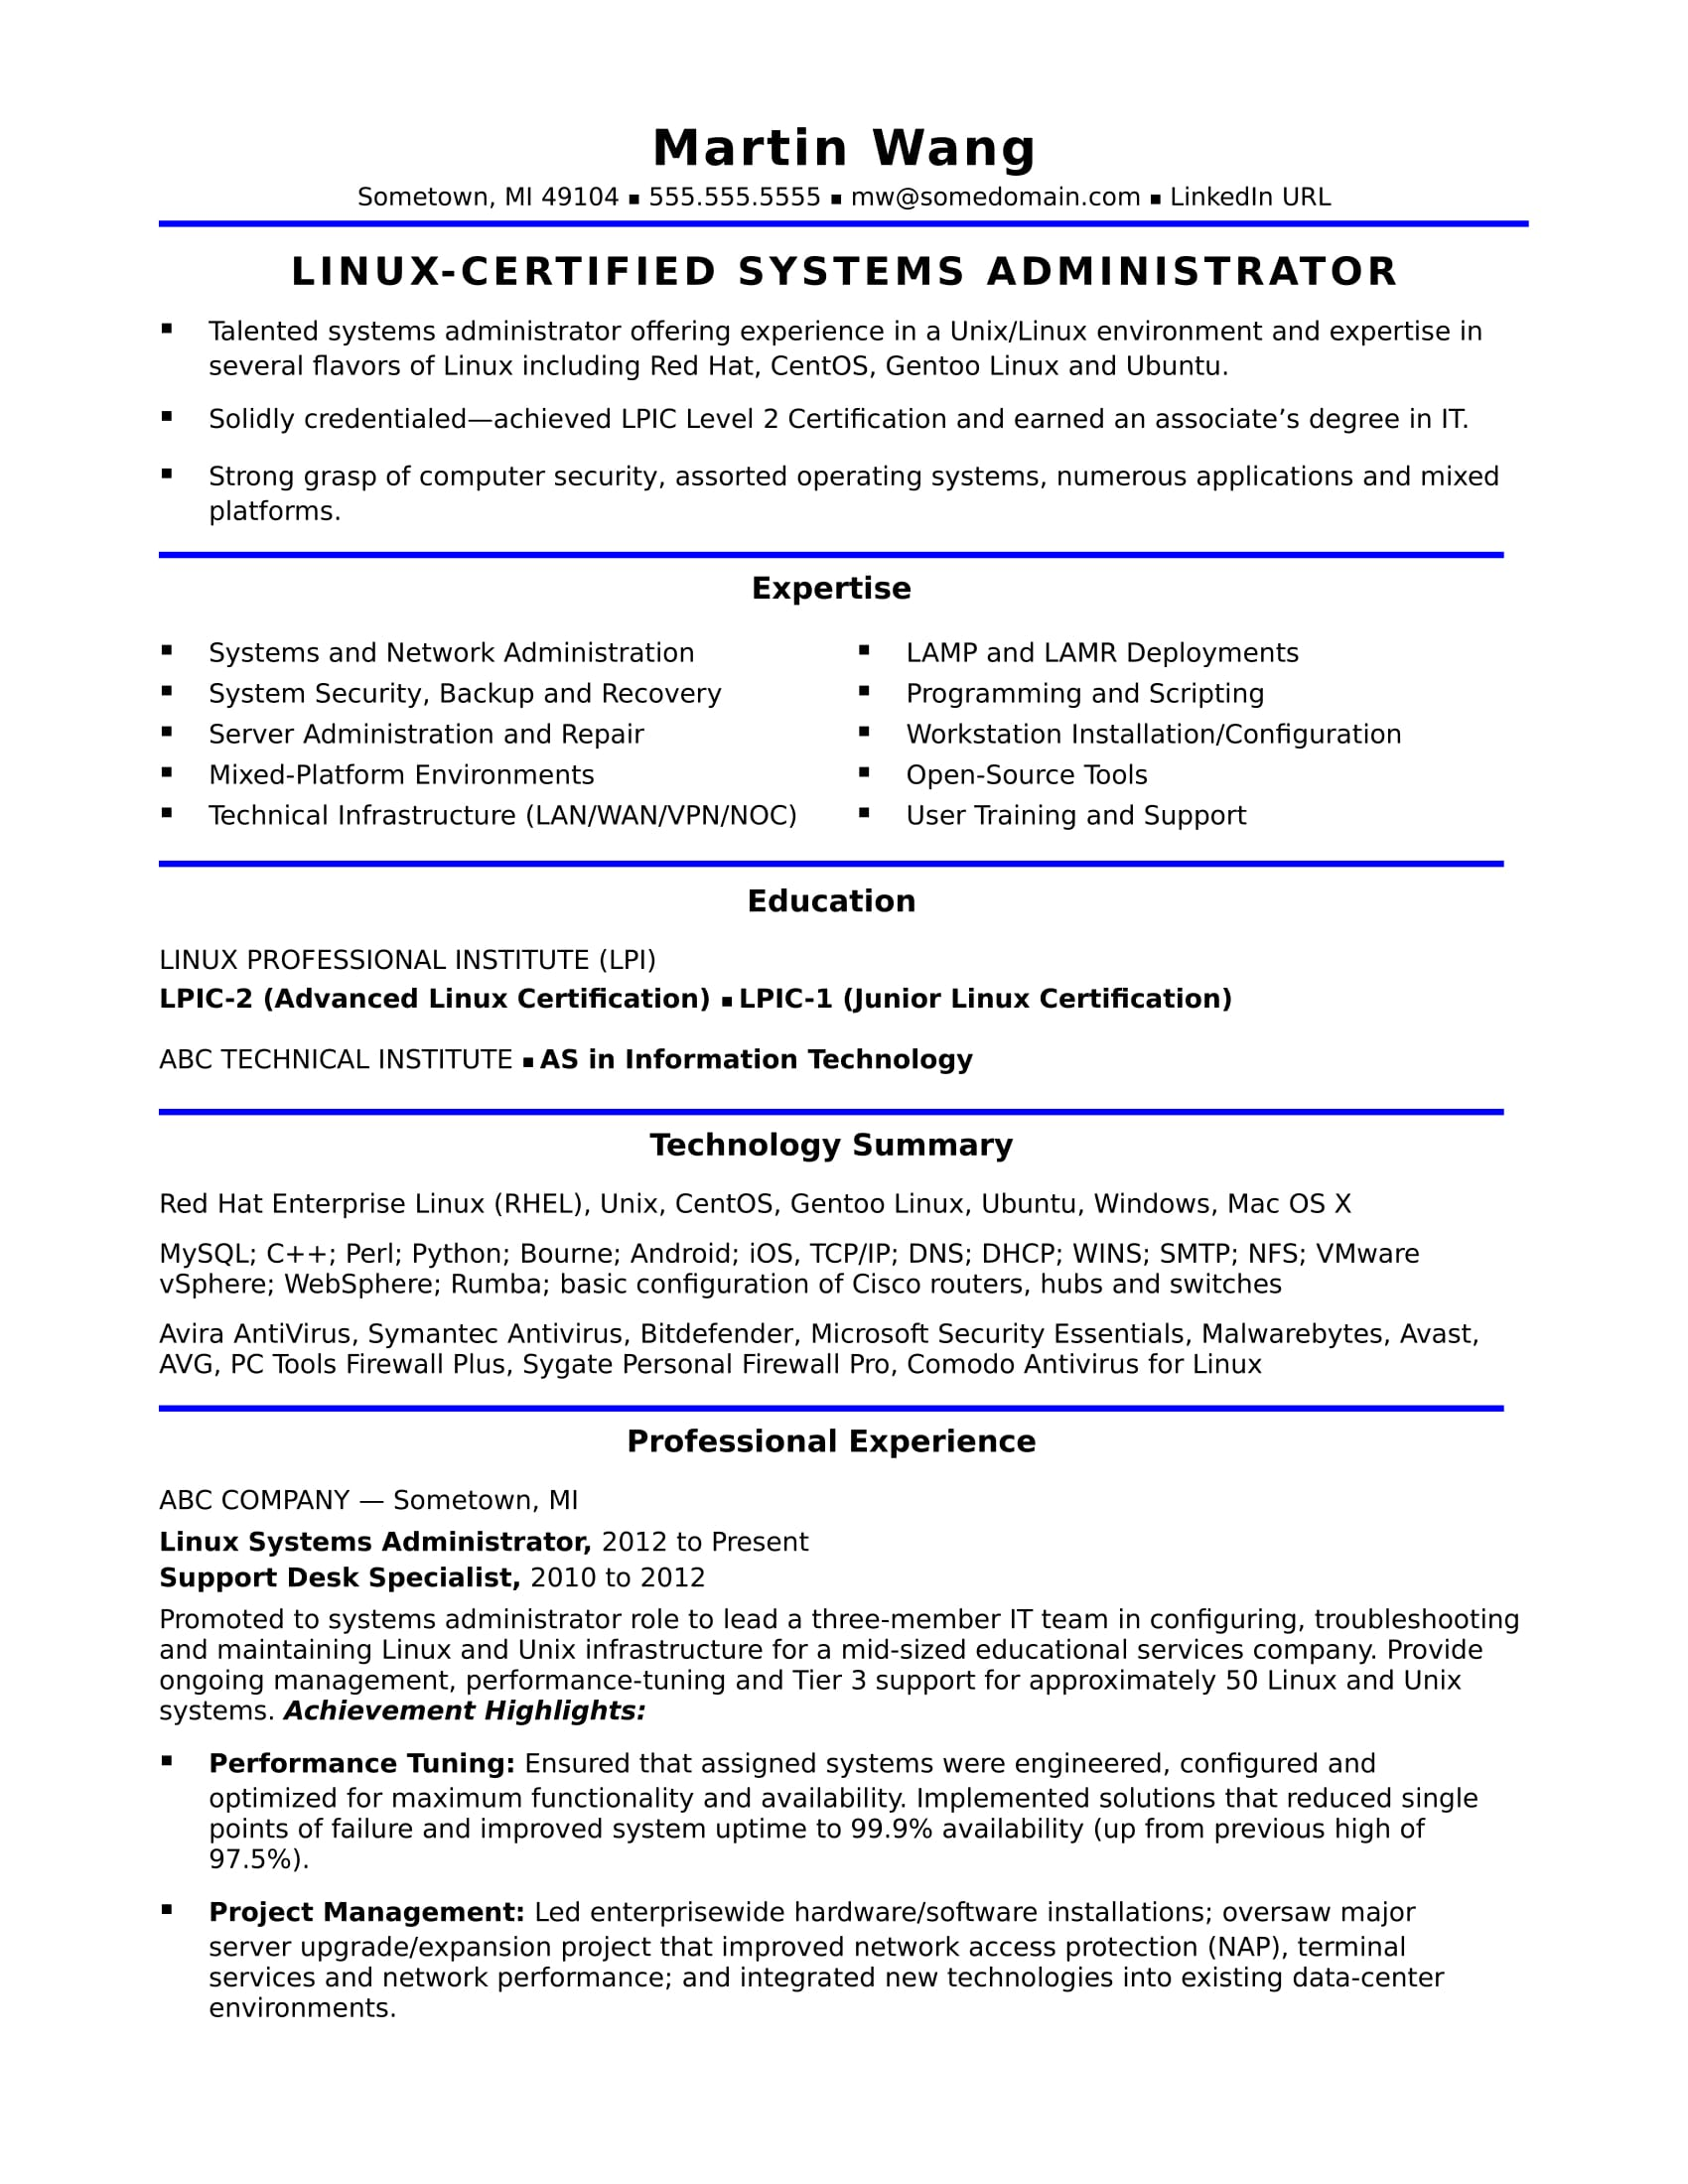 linux administrator resume sample for experience